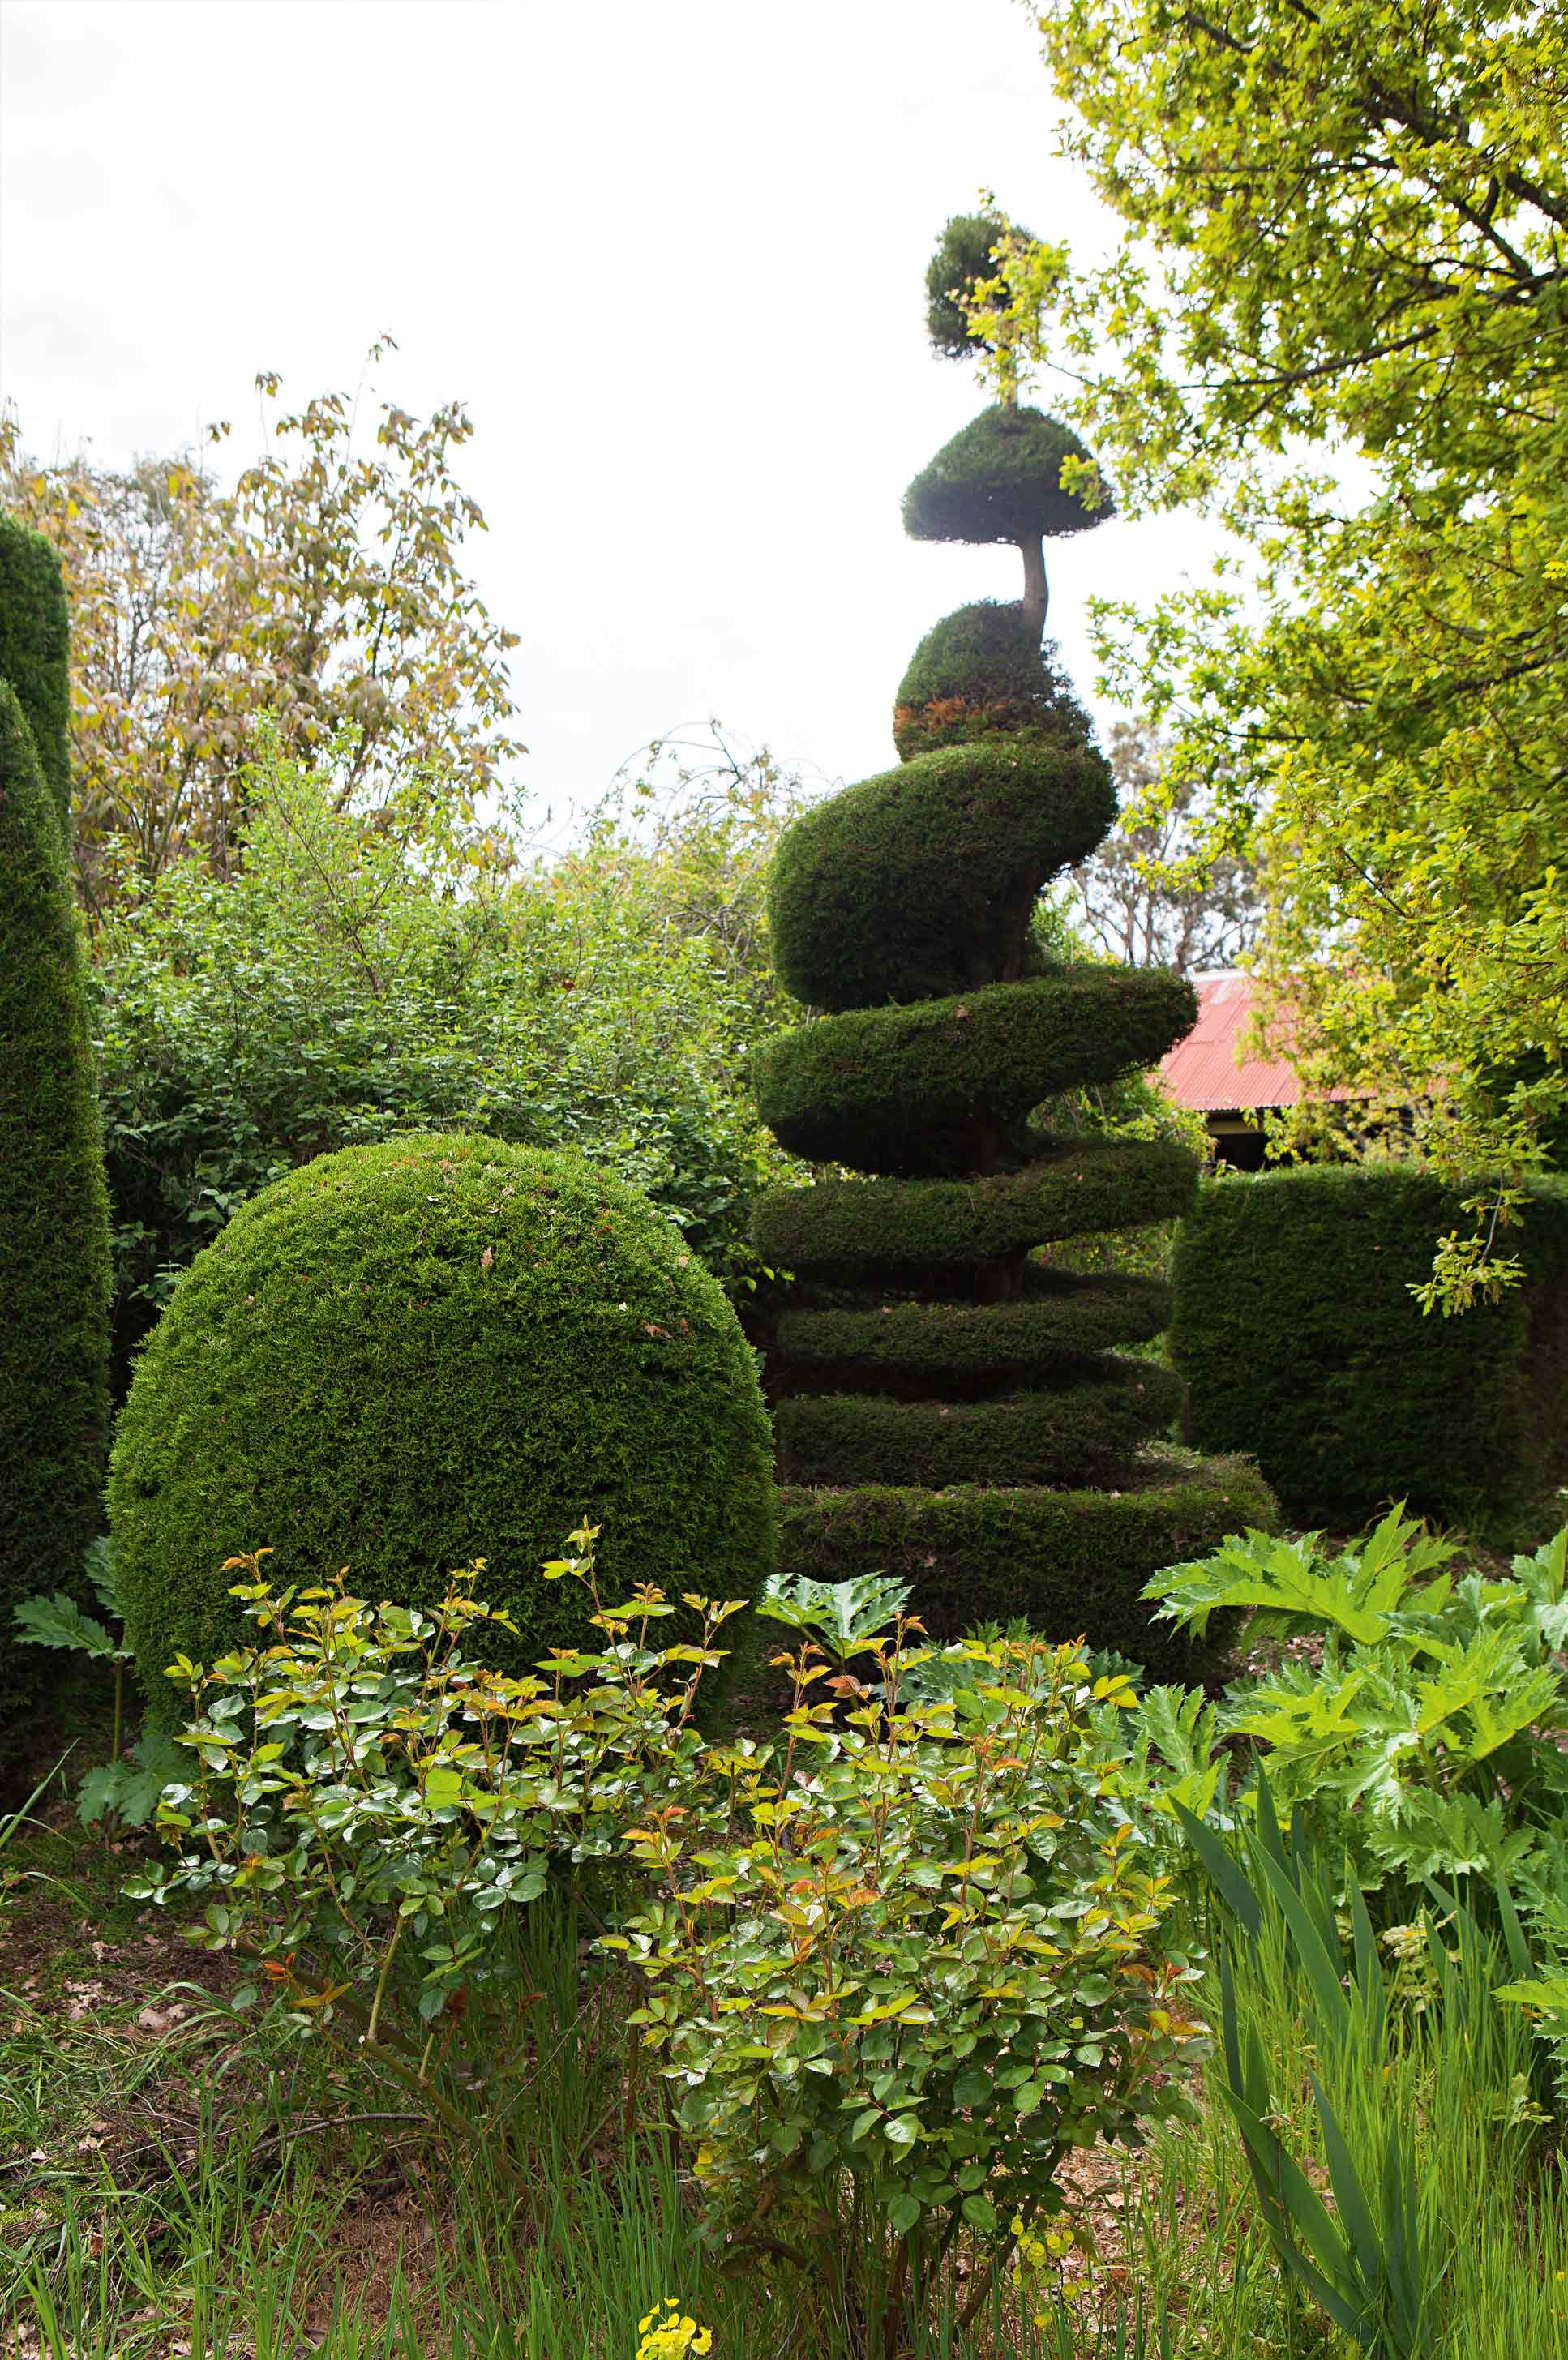 Topiary How To Shape A Hedge Into Topiary Ball And Other Designs Australian House And Garden